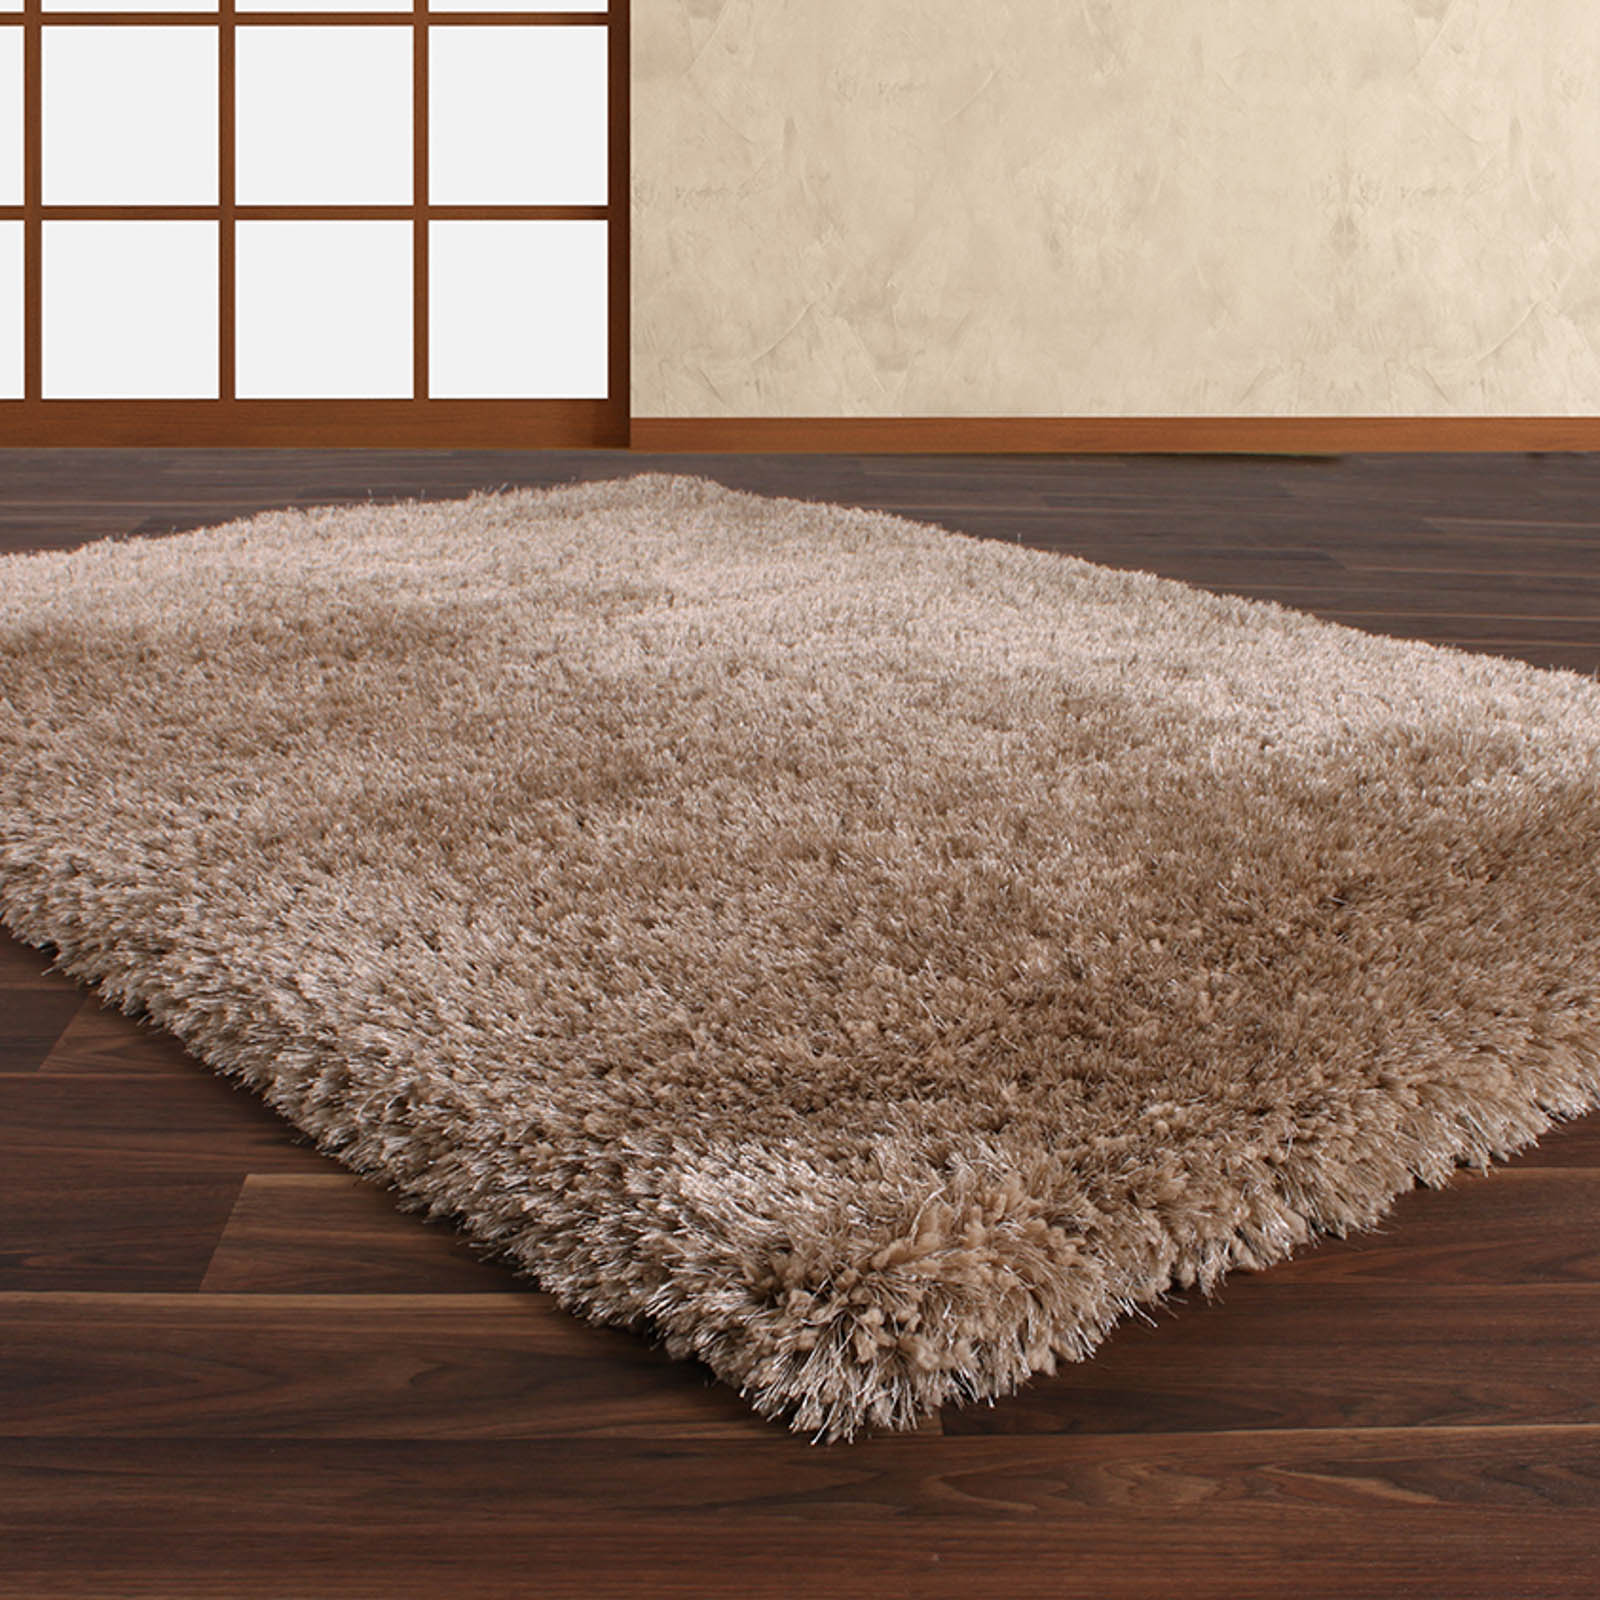 Allure Shaggy Rugs in Beige